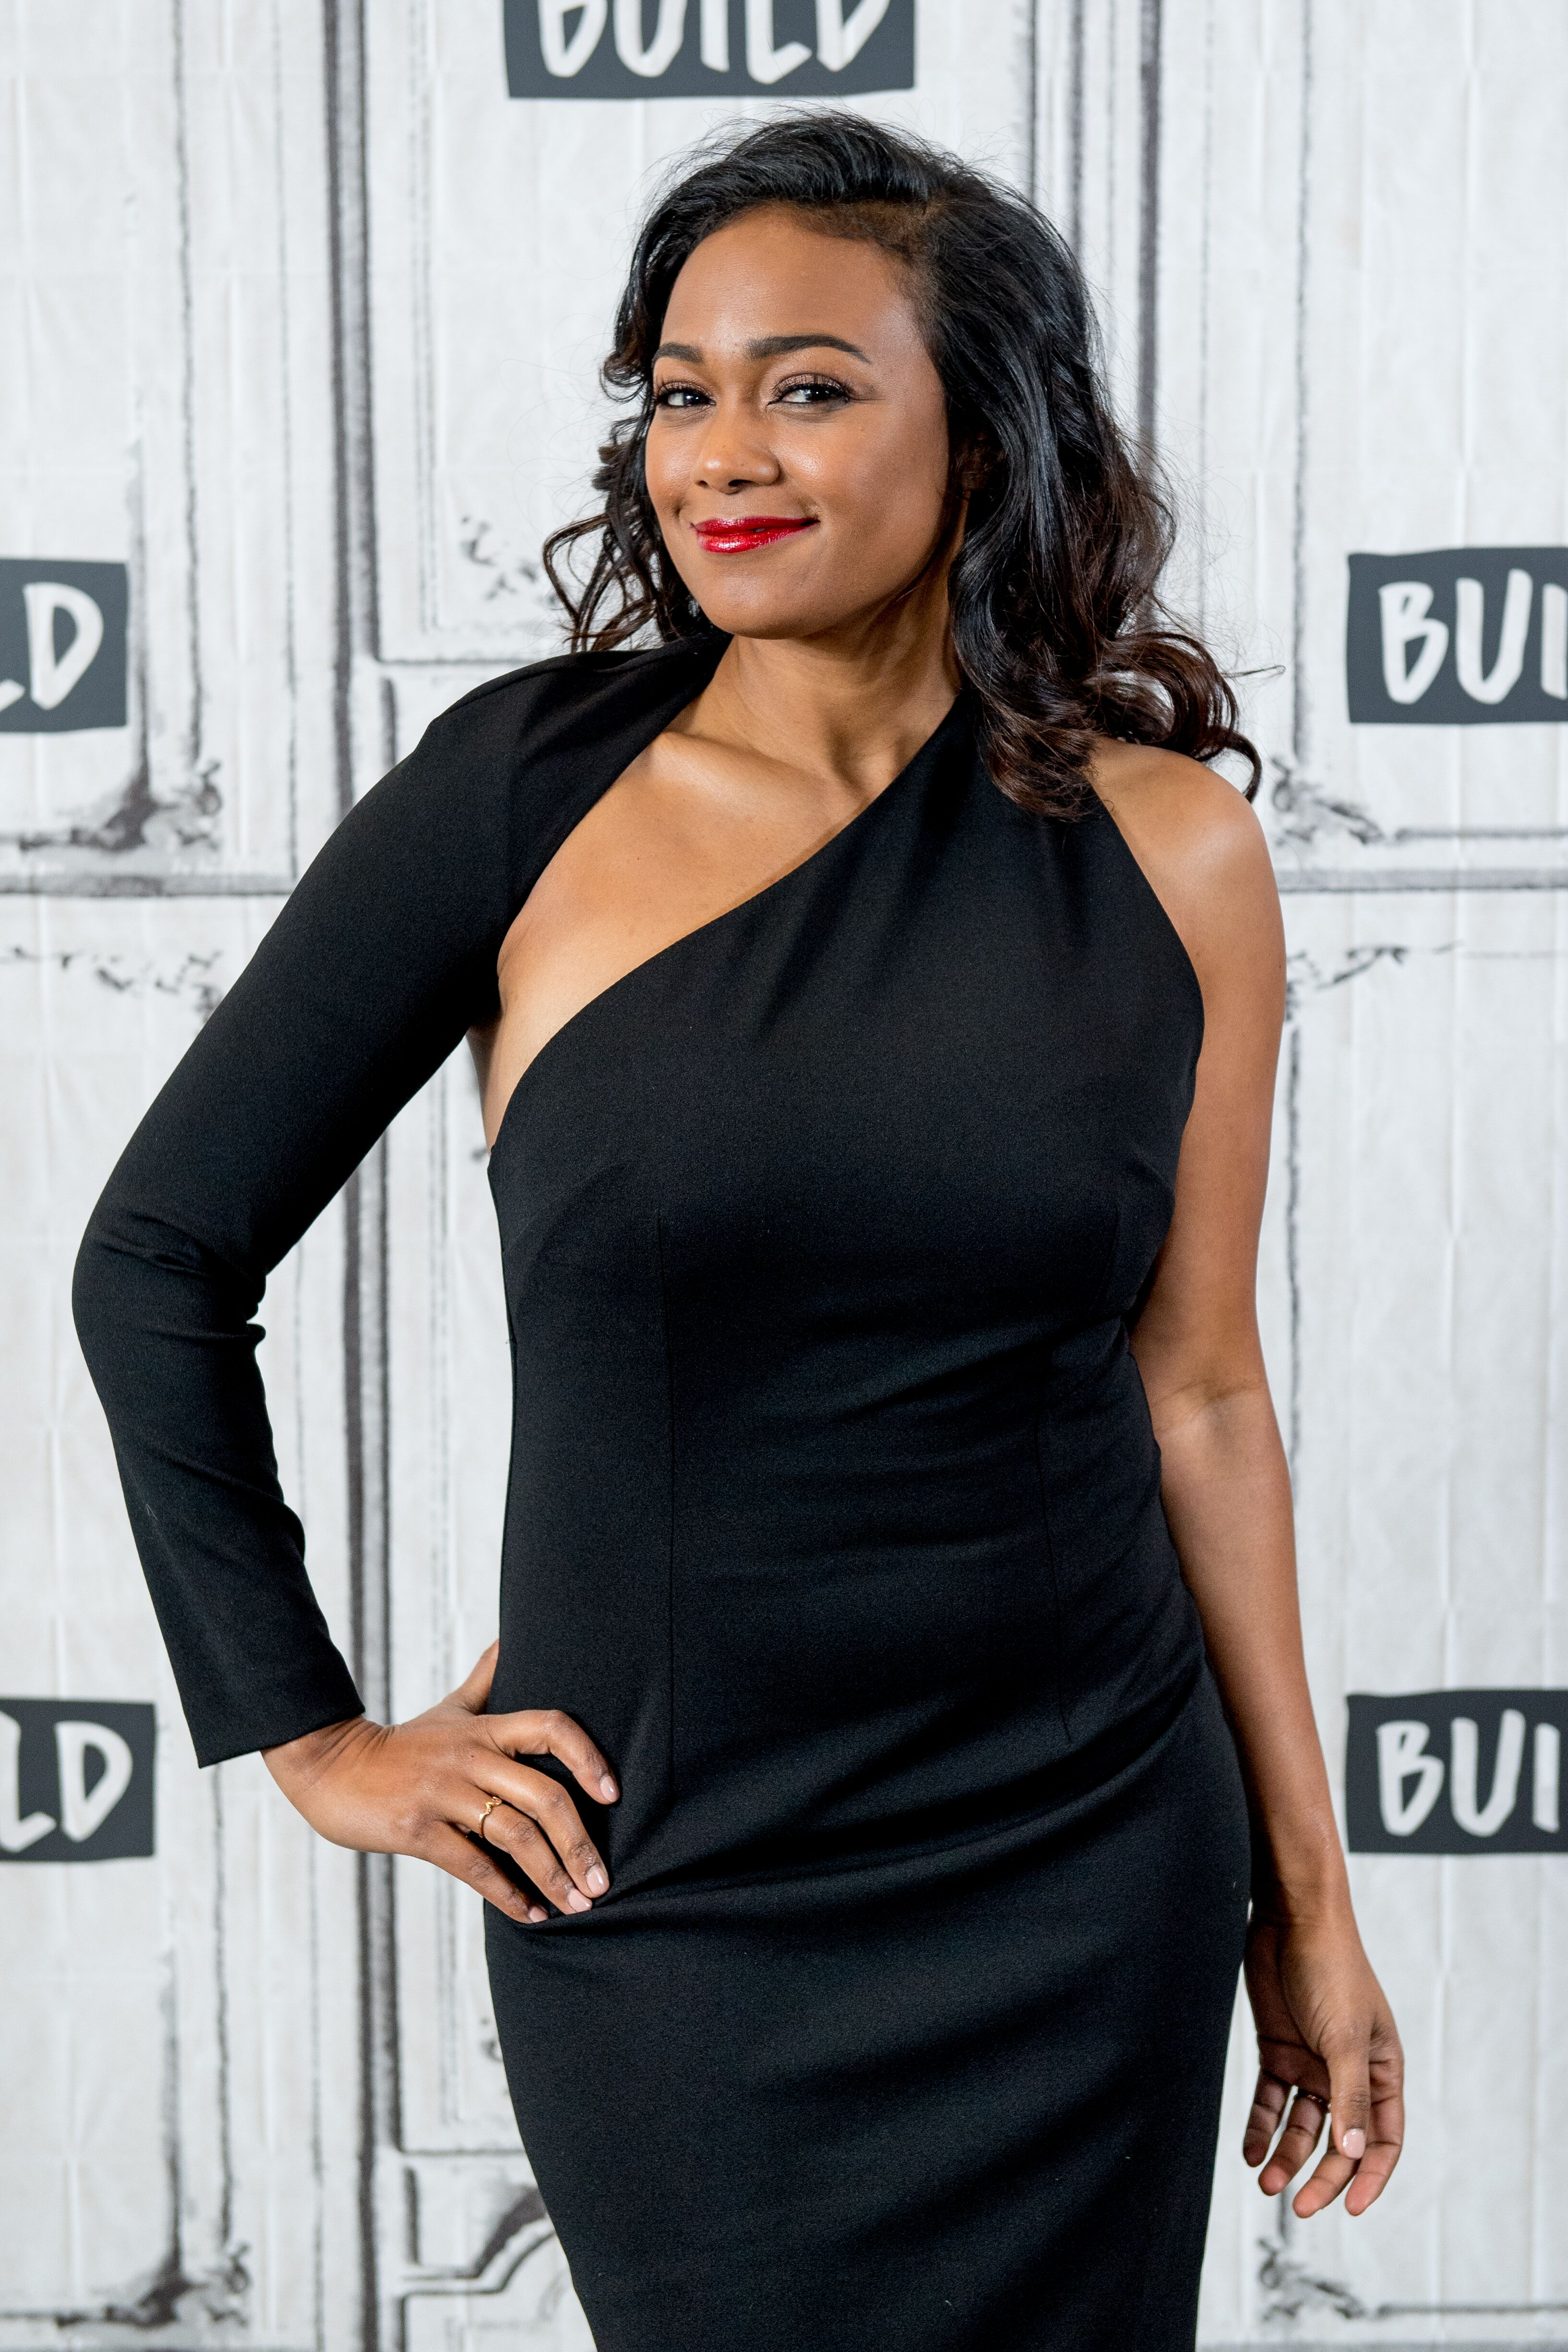 """Tatyana Ali discusses American Heart Association's """"Go Red"""" campaign with the Build Series at Build Studio in 2018